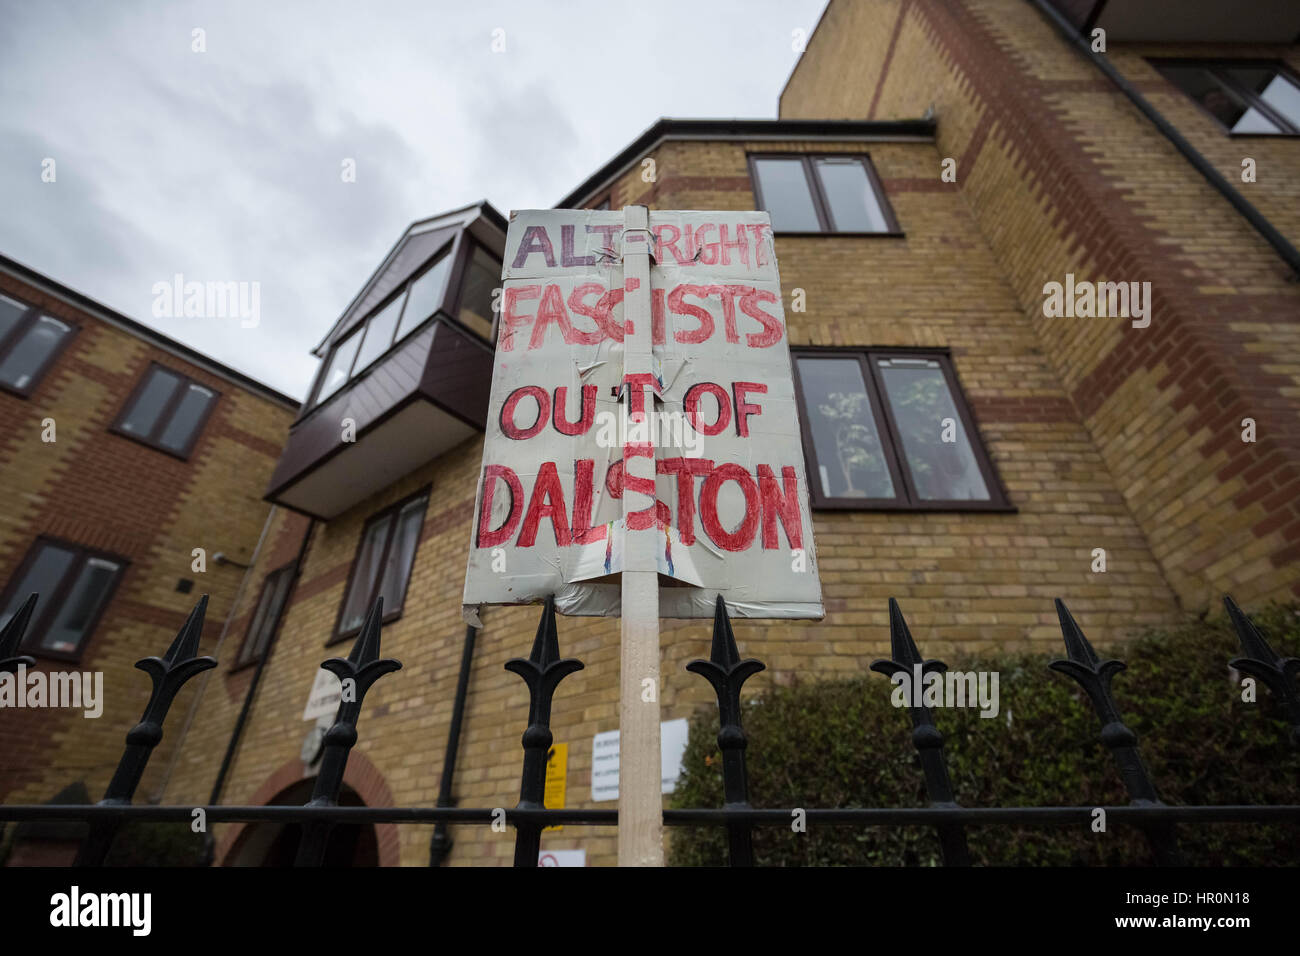 London, UK. 25th Feb, 2017. Anti-fascists protest in Dalston, NE London outside the LD50 art gallery calling for - Stock Image